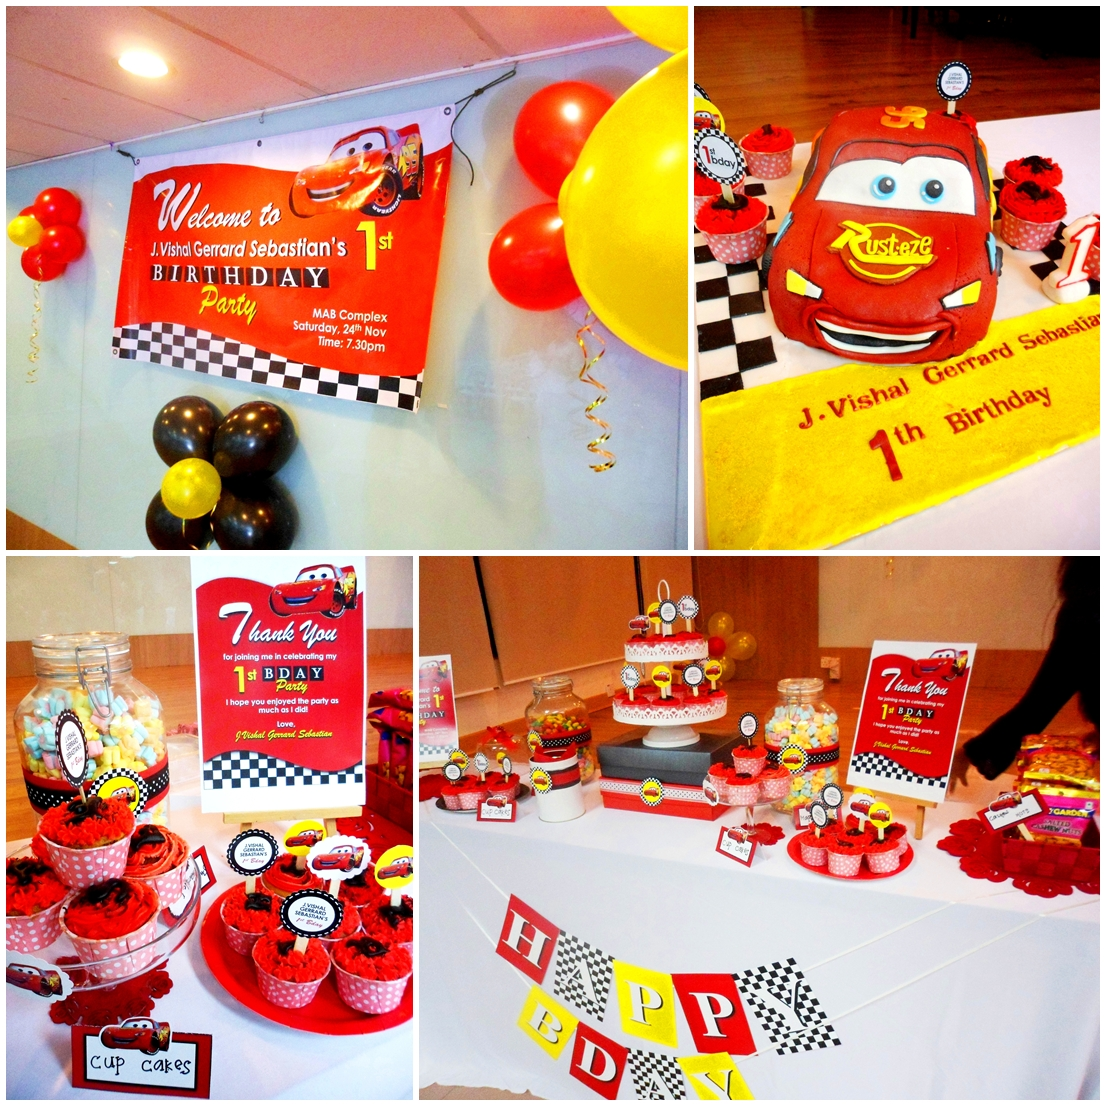 Gmail cars theme - If You Want Us To Decorate Your Party Please Email To Treschic Thepartyplanner Gmail Com For Price Other Enquiries Let Us Know Your Budget